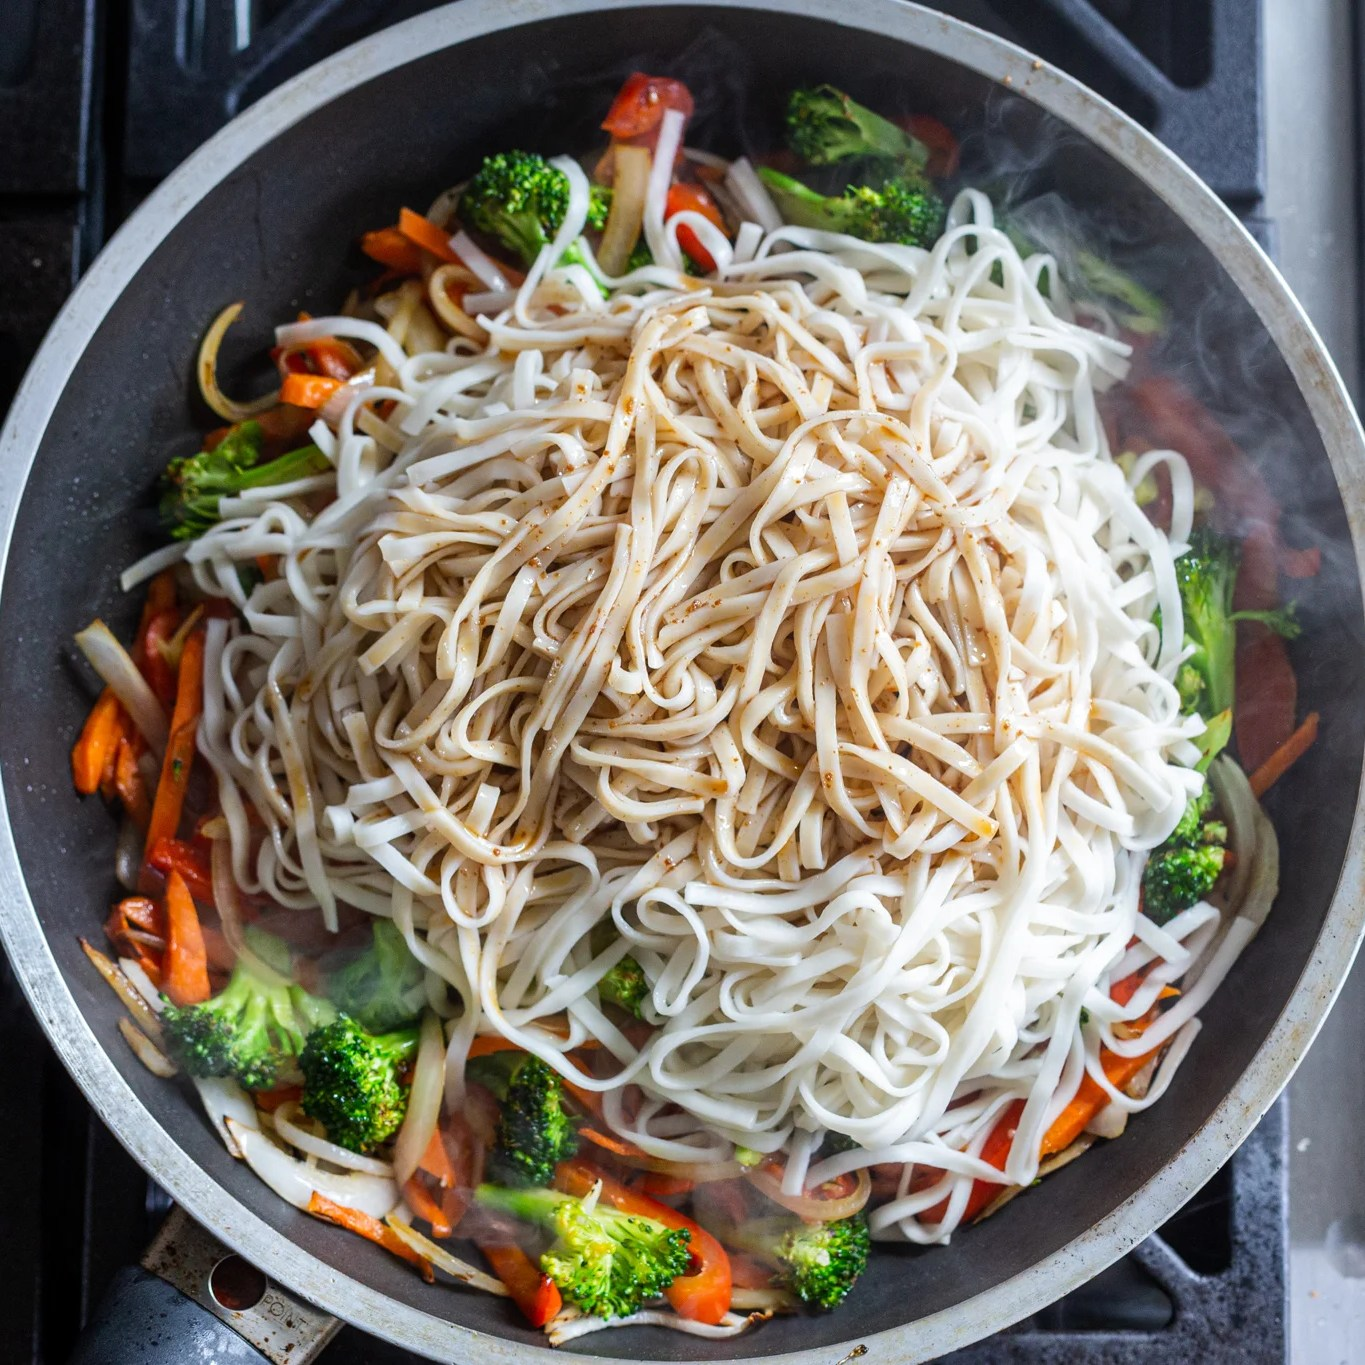 Noodles and sauce added to a skillet